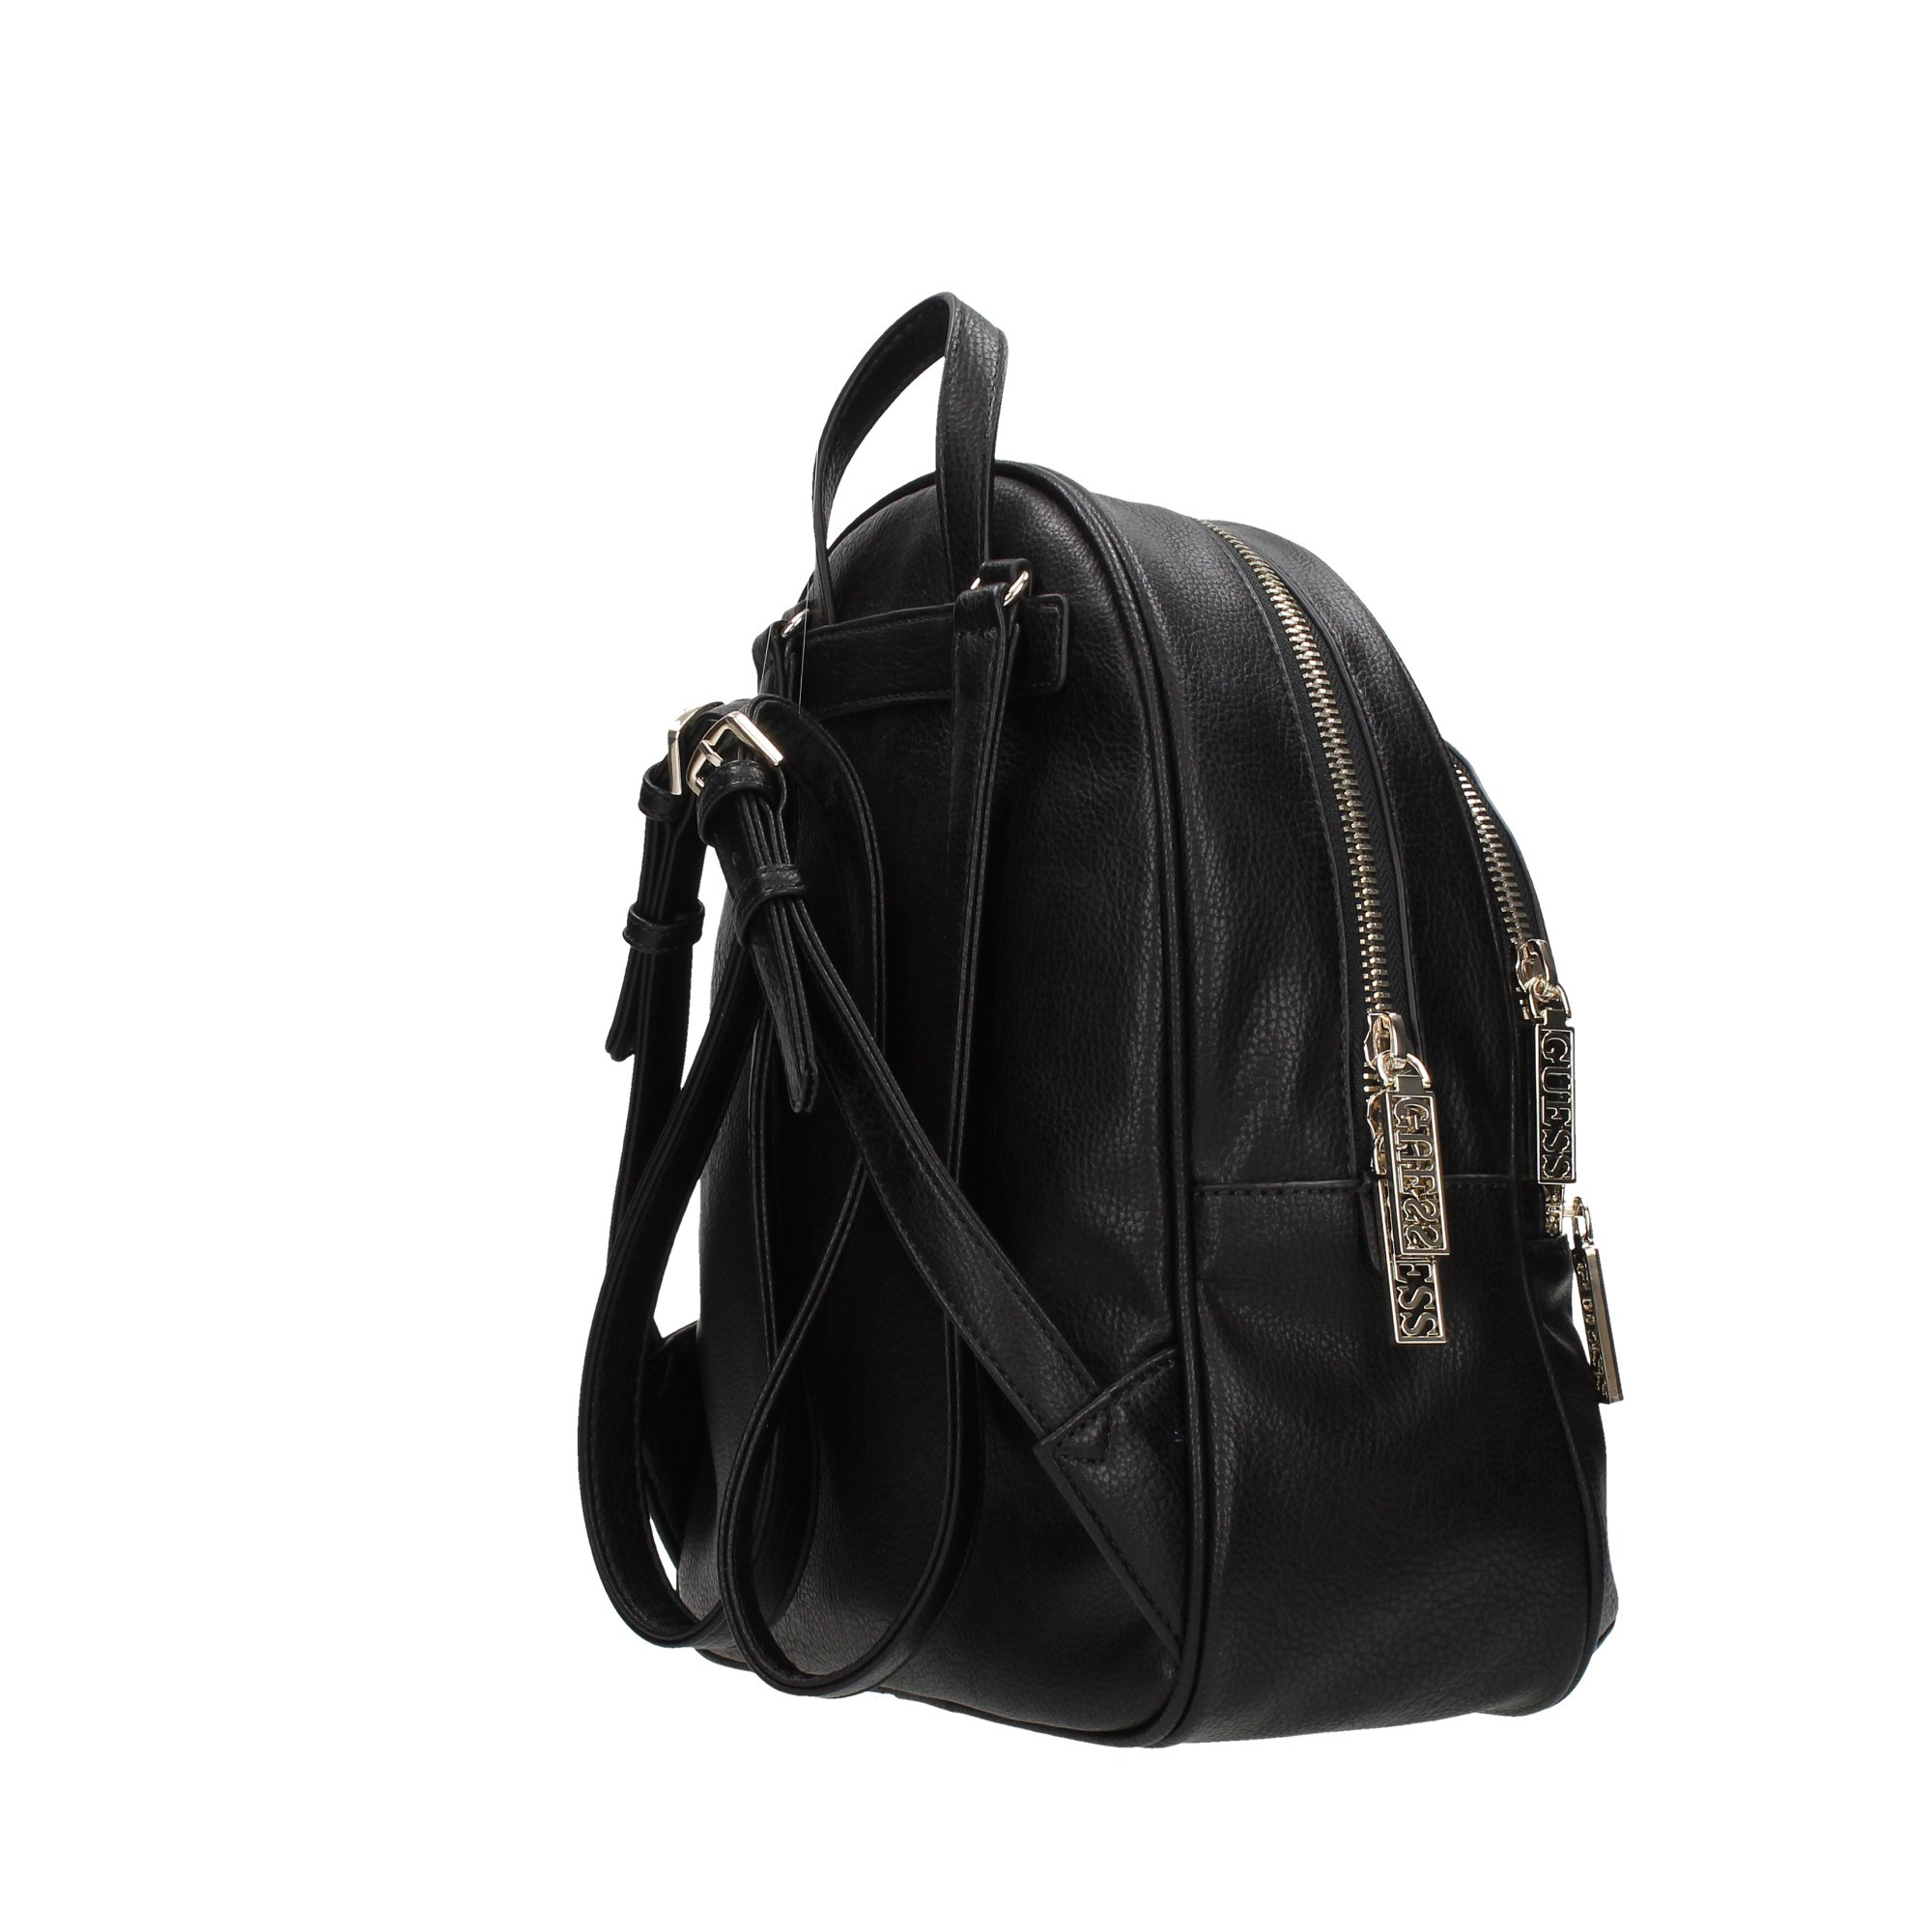 Guess Borse Accessories Women Backpack Black HWVS69/94320